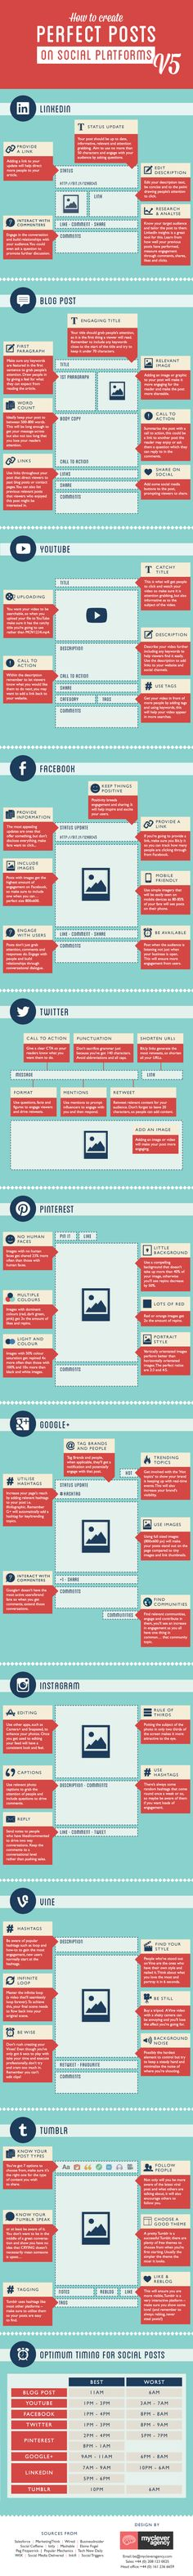 The Art Of Creating Shareable Post on Facebook, GooglePlus, Twitter, Instagram, LinkedIn - infographic